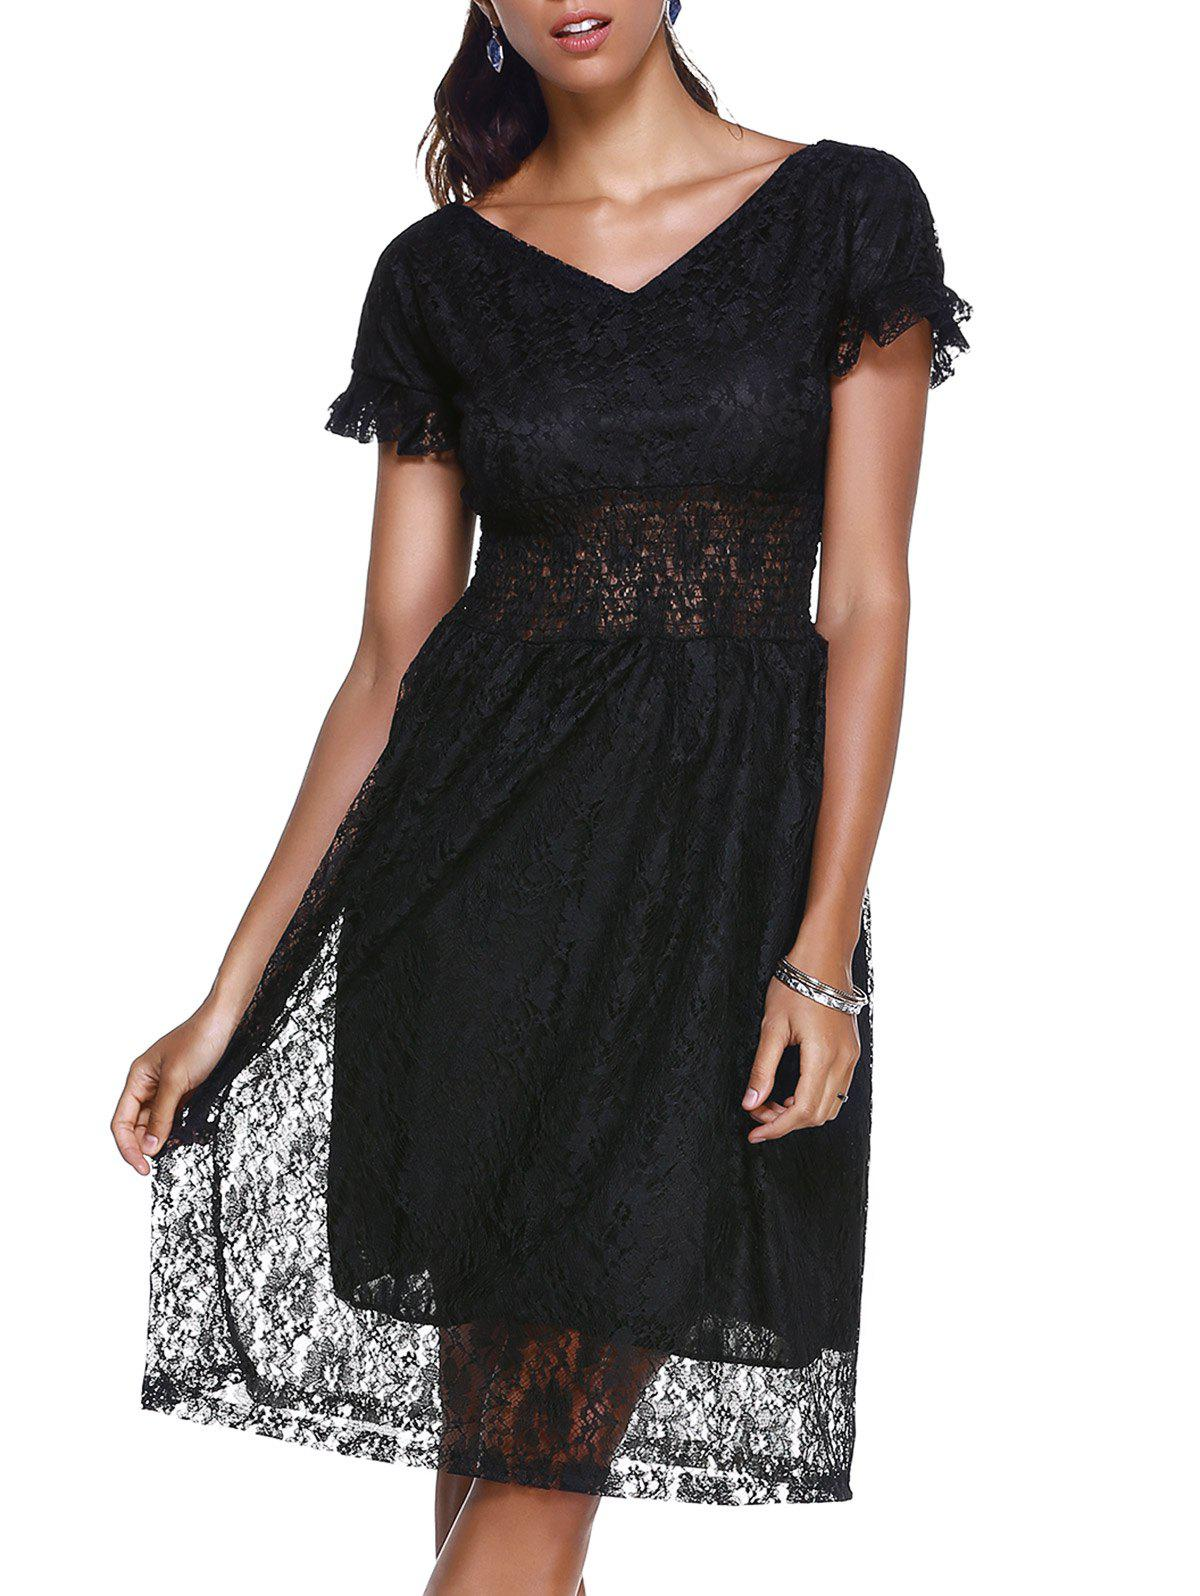 Women's Graceful Flare Sleeve V Neck High Waist Laced Dress - BLACK ONE SIZE(FIT SIZE XS TO M)